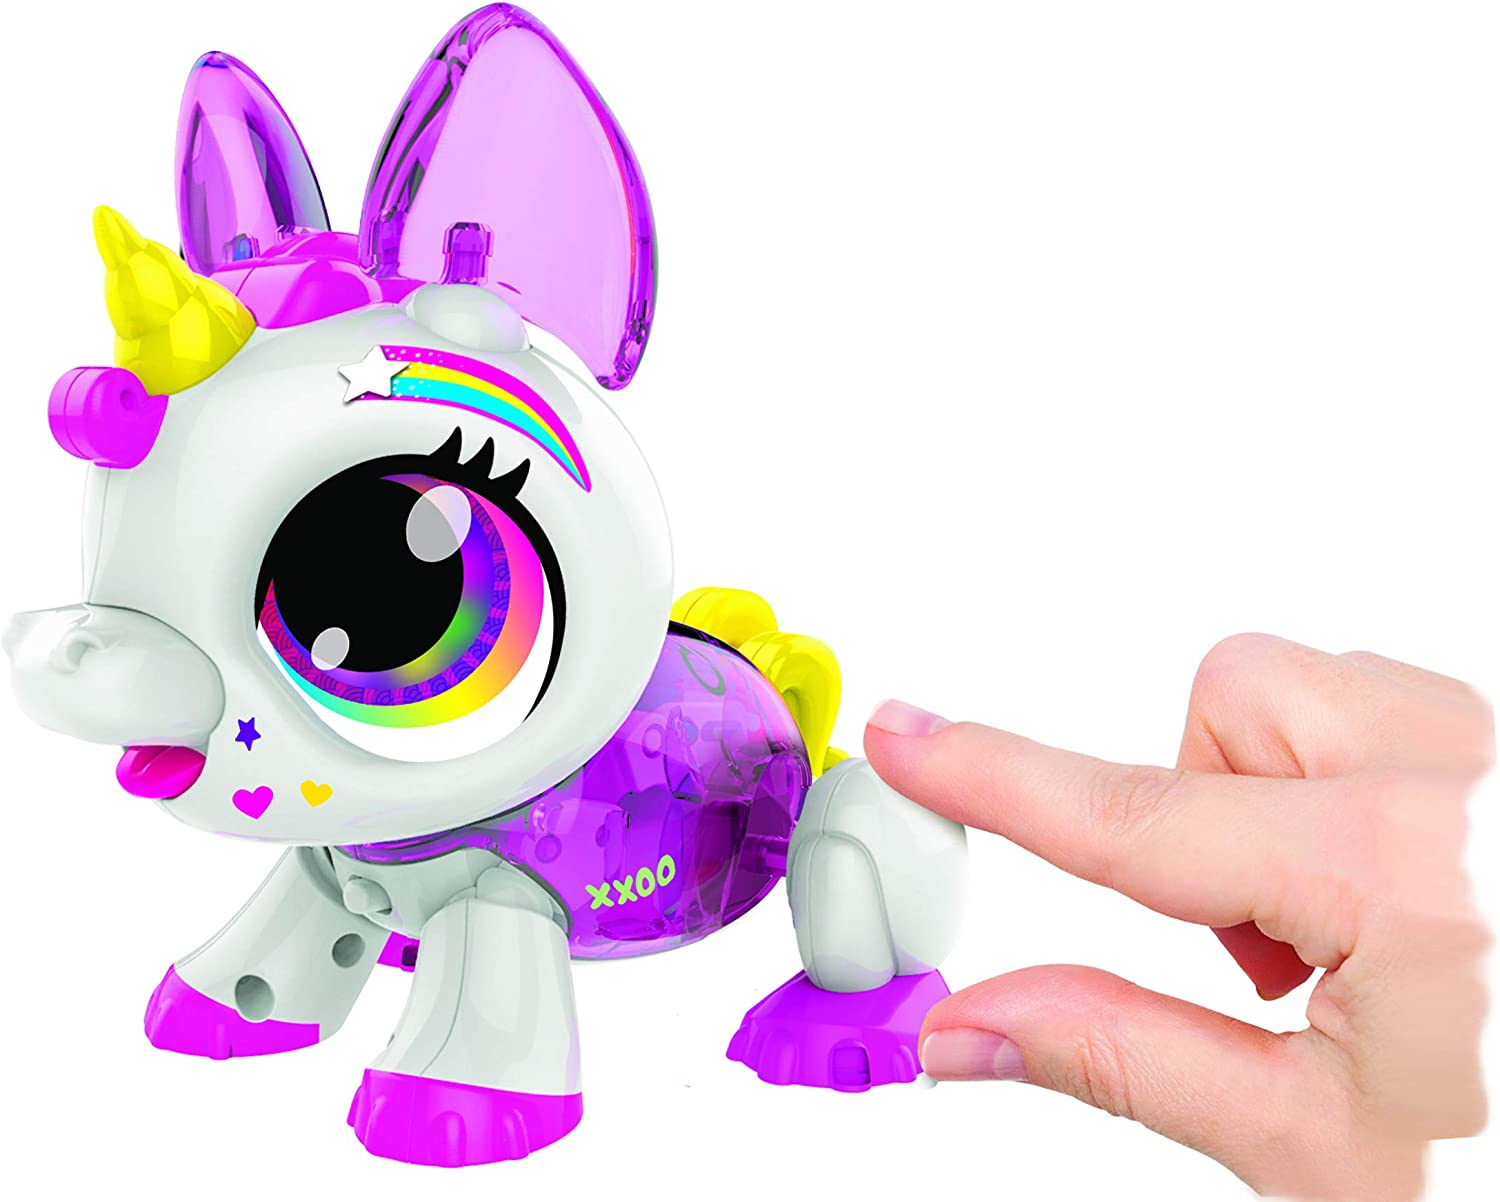 Top 15 Best Unicorn Toys And Gift For Girls in 2020 1